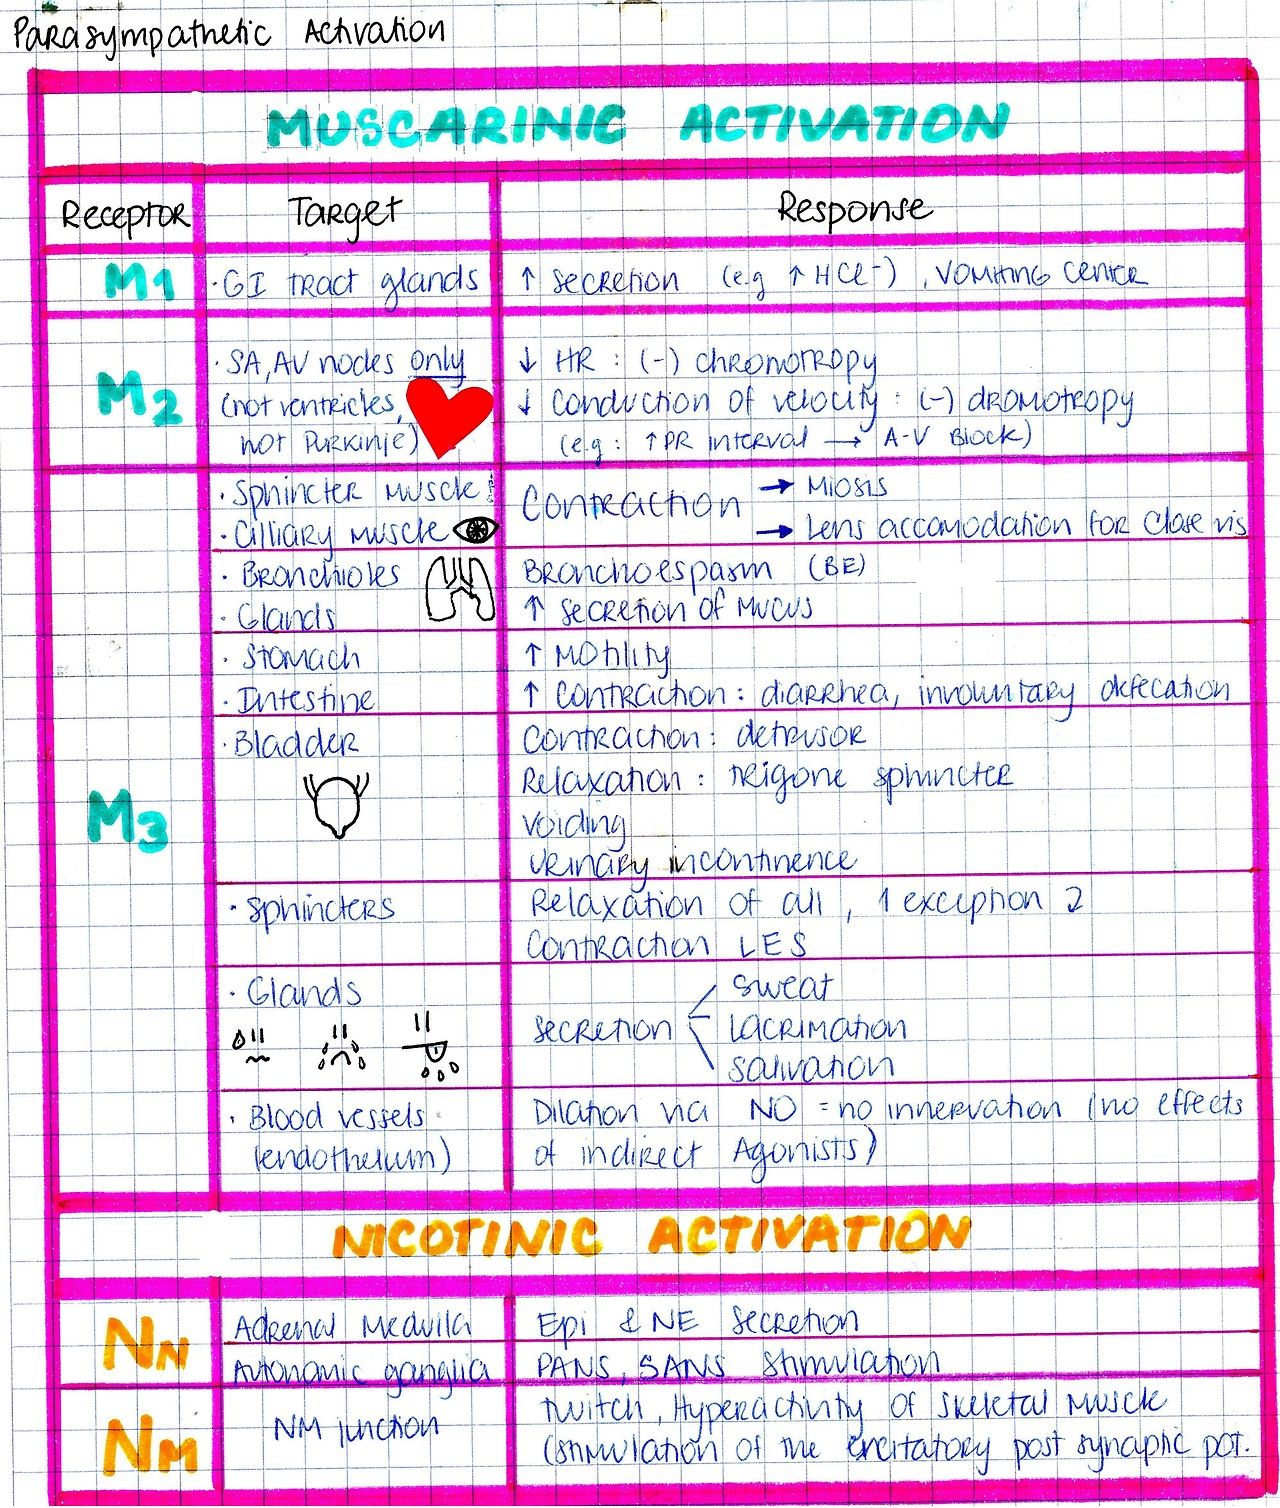 Muscarinic And Nicotnic Activation